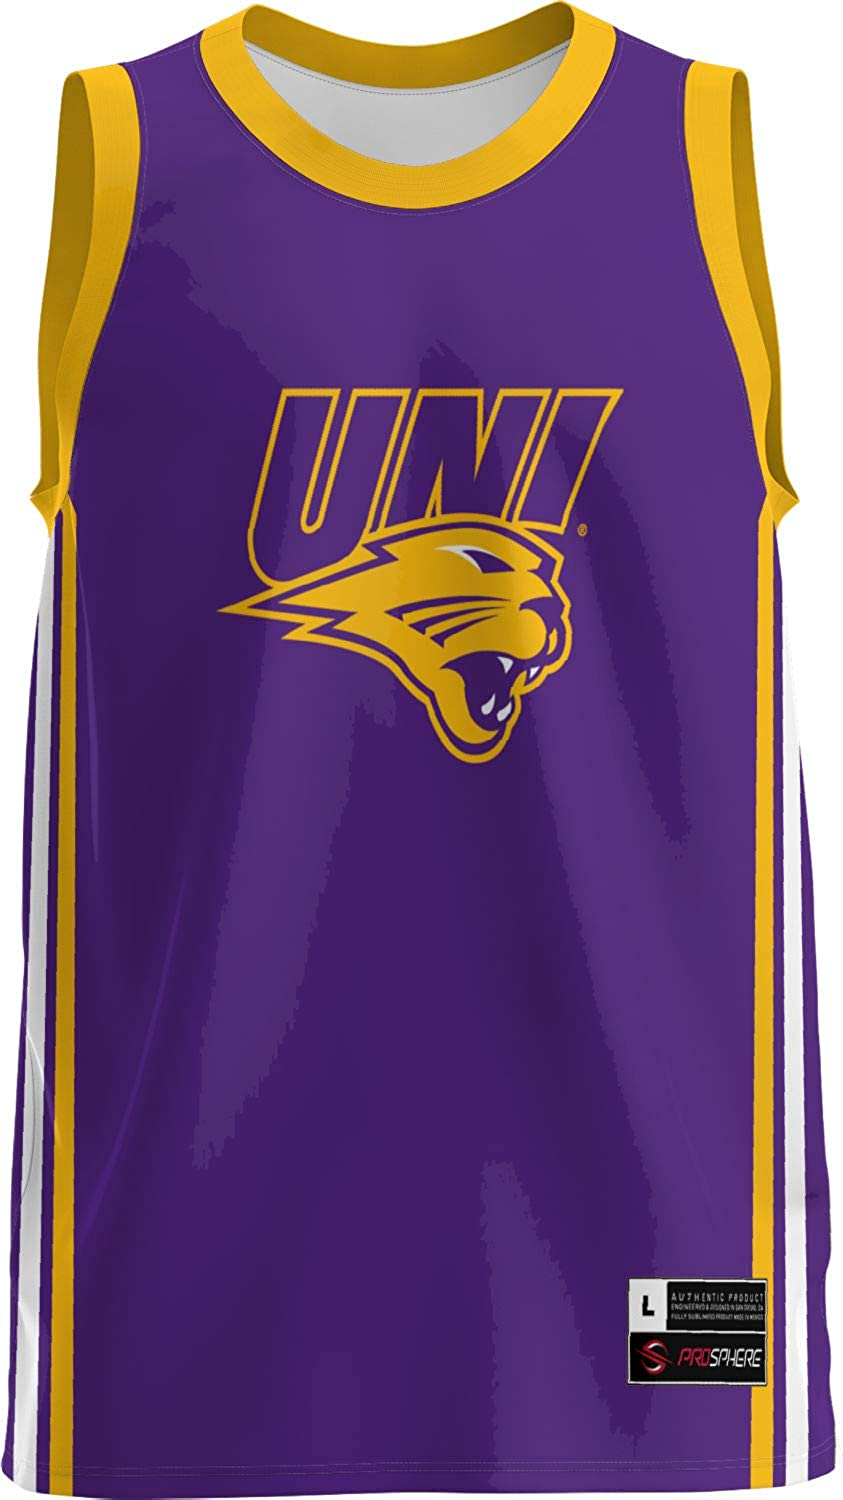 half off 3040a e1f47 Amazon.com: ProSphere University of Northern Iowa Men's ...